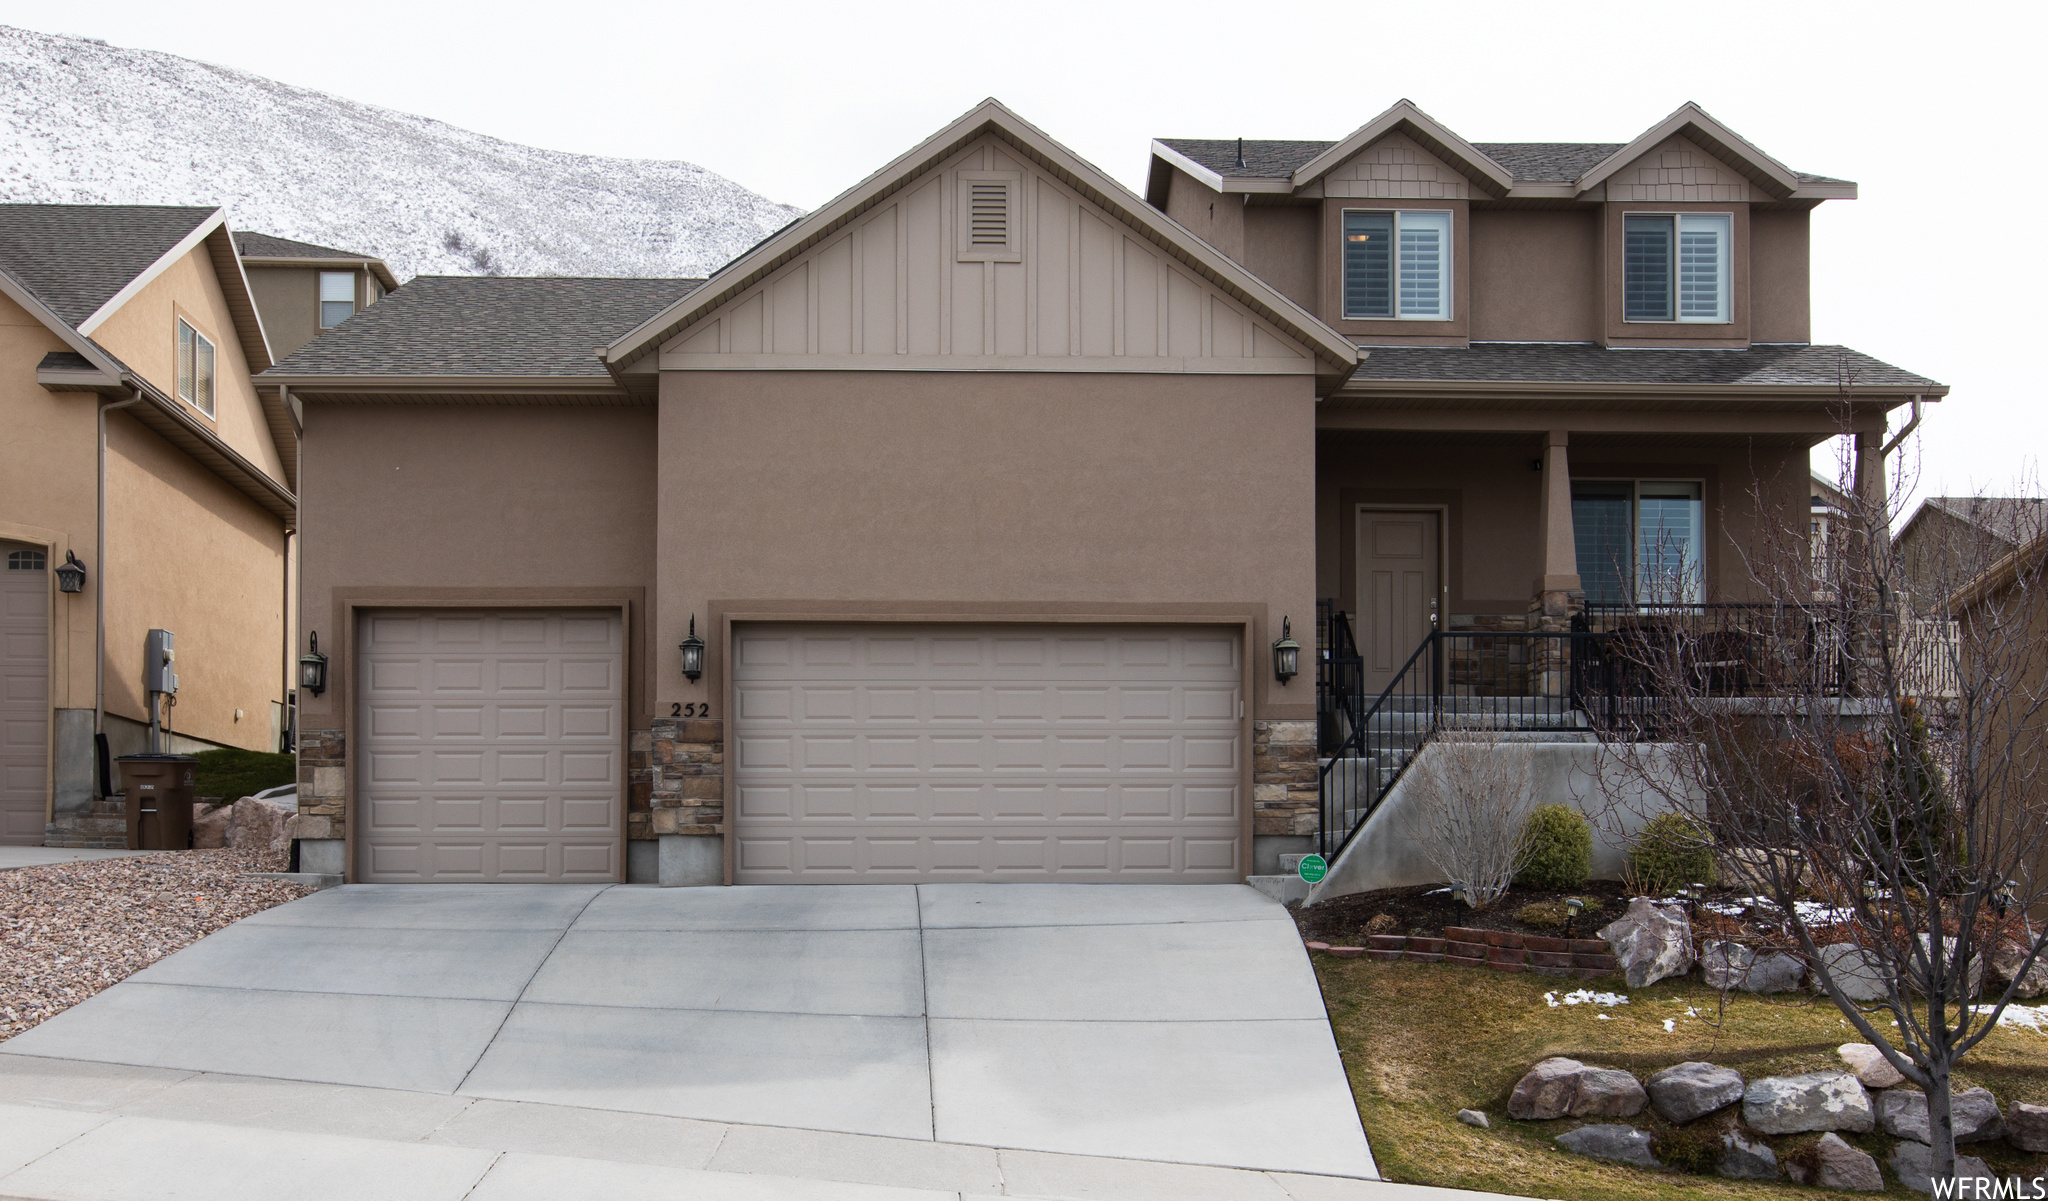 Property for sale at 252 E Red Leaf S, Draper,  Utah 84020